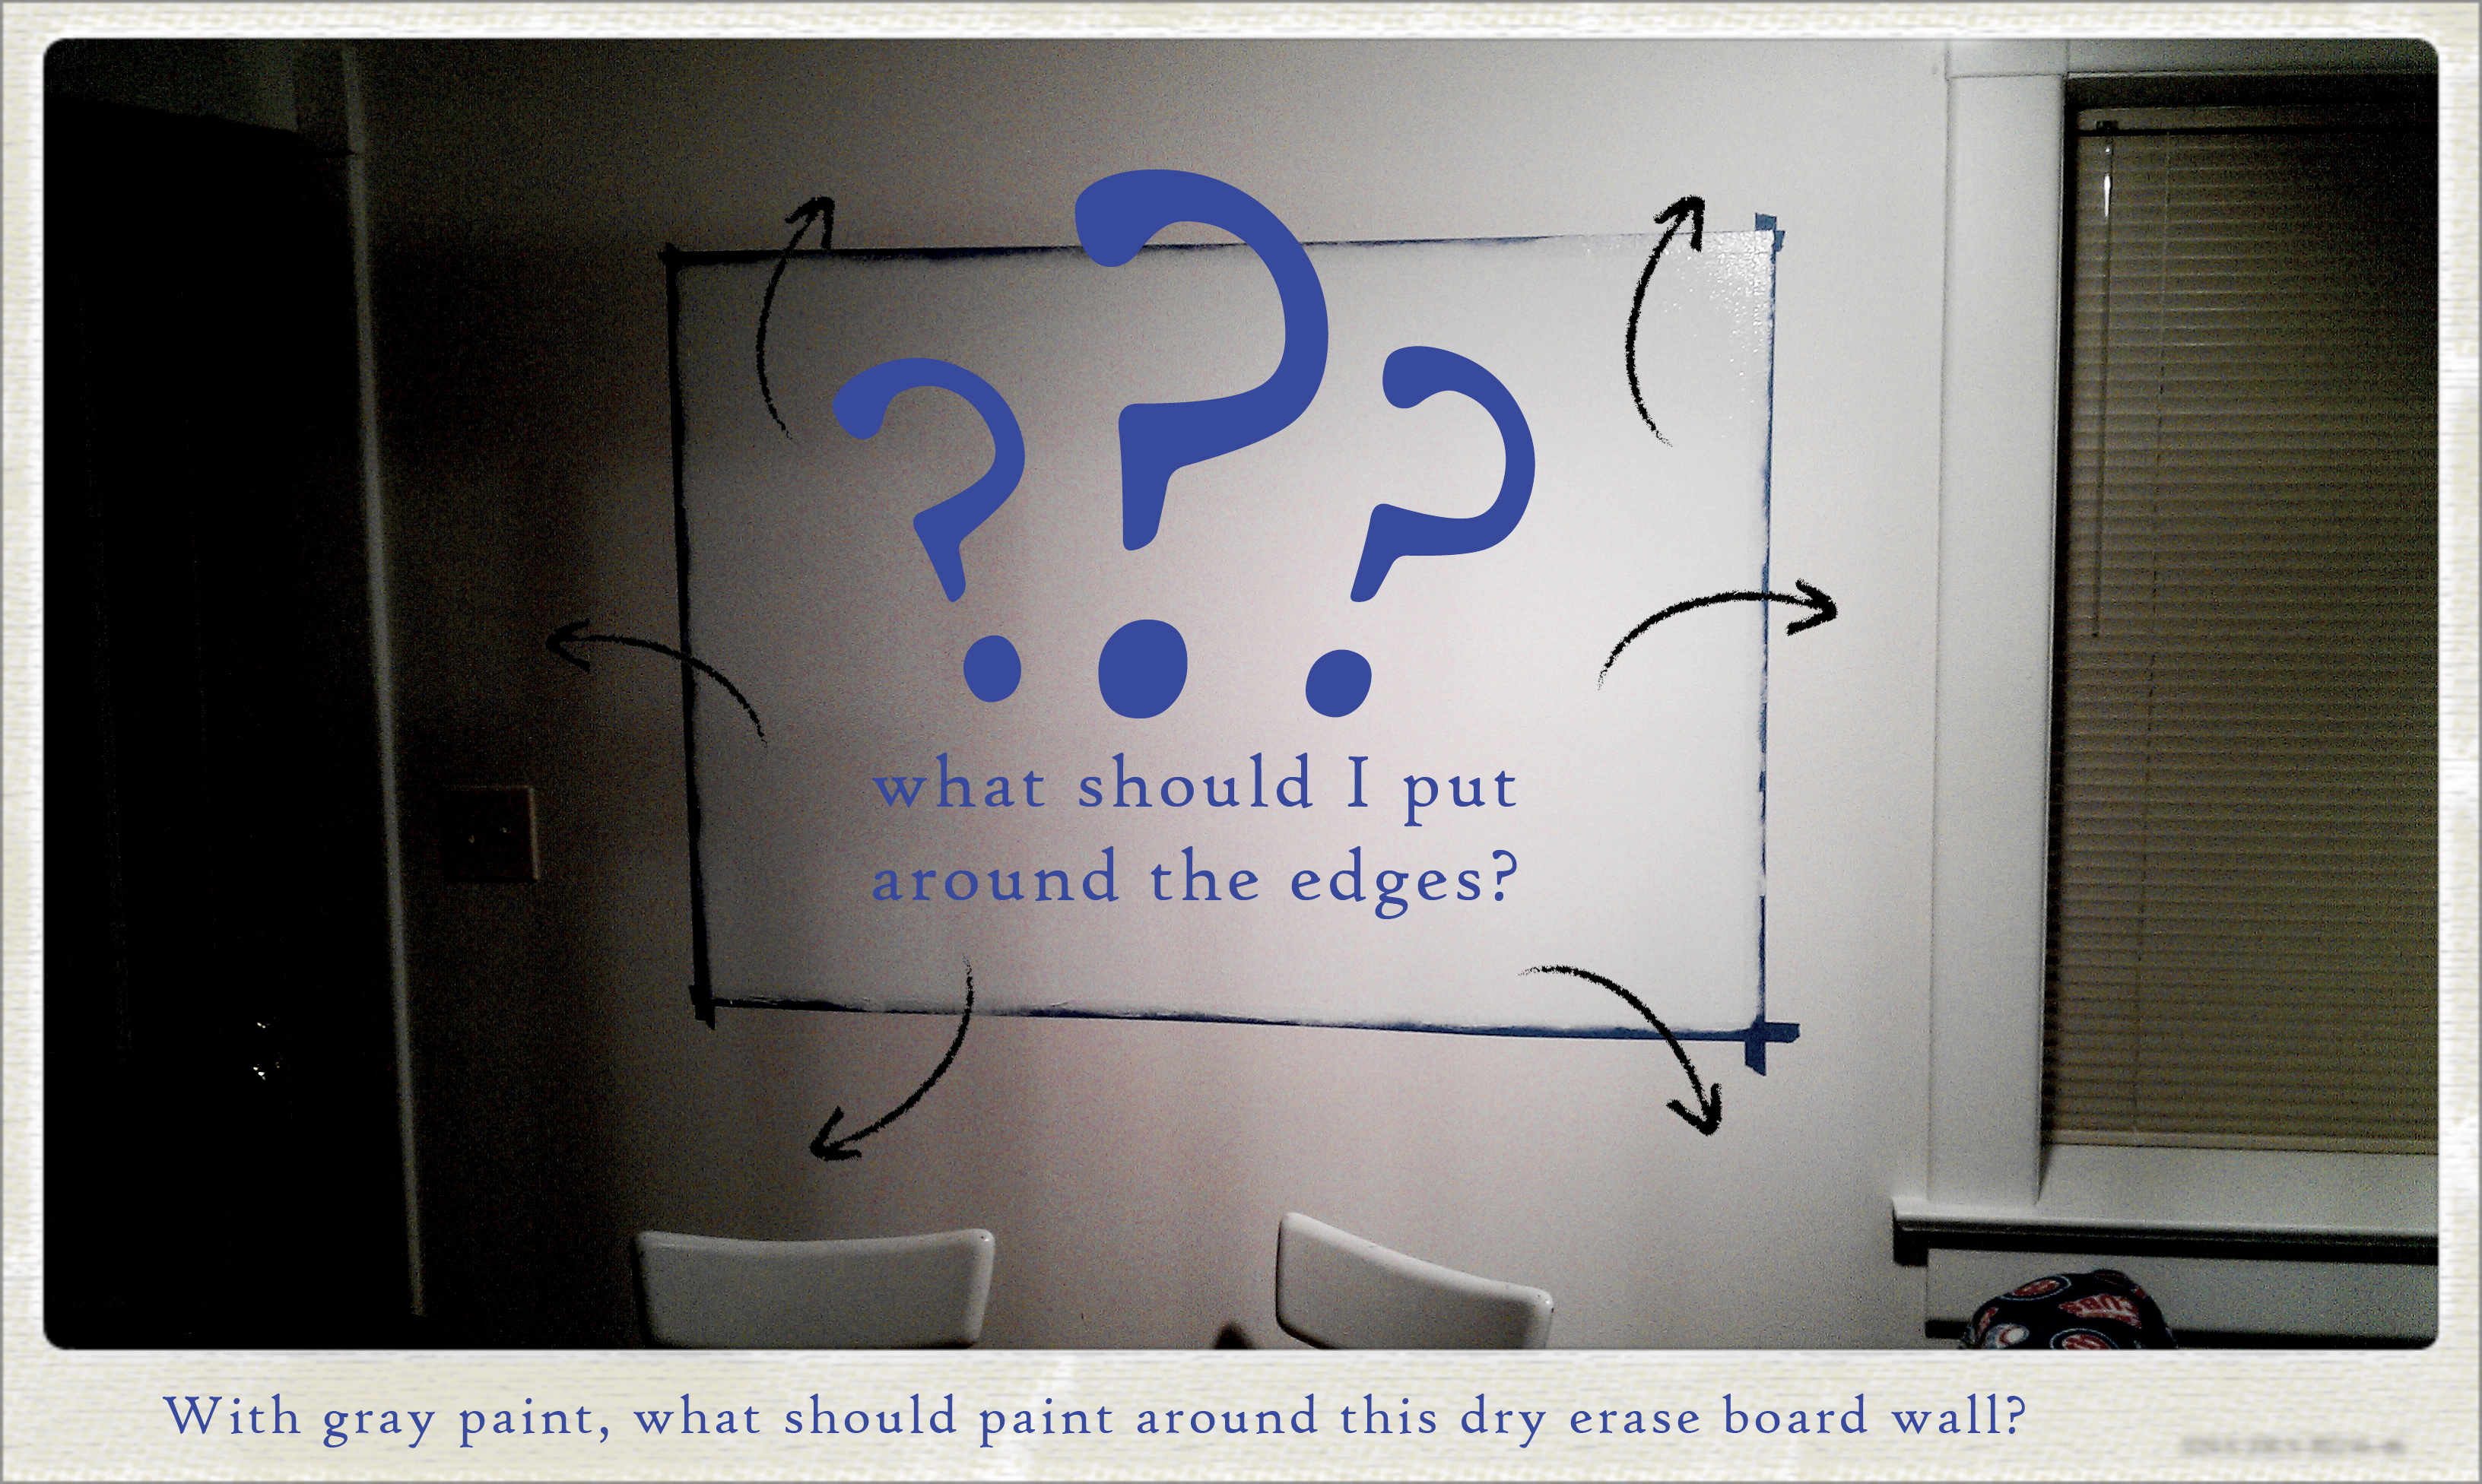 design ideas for the border to my dry erase board wall nate schrader. Black Bedroom Furniture Sets. Home Design Ideas